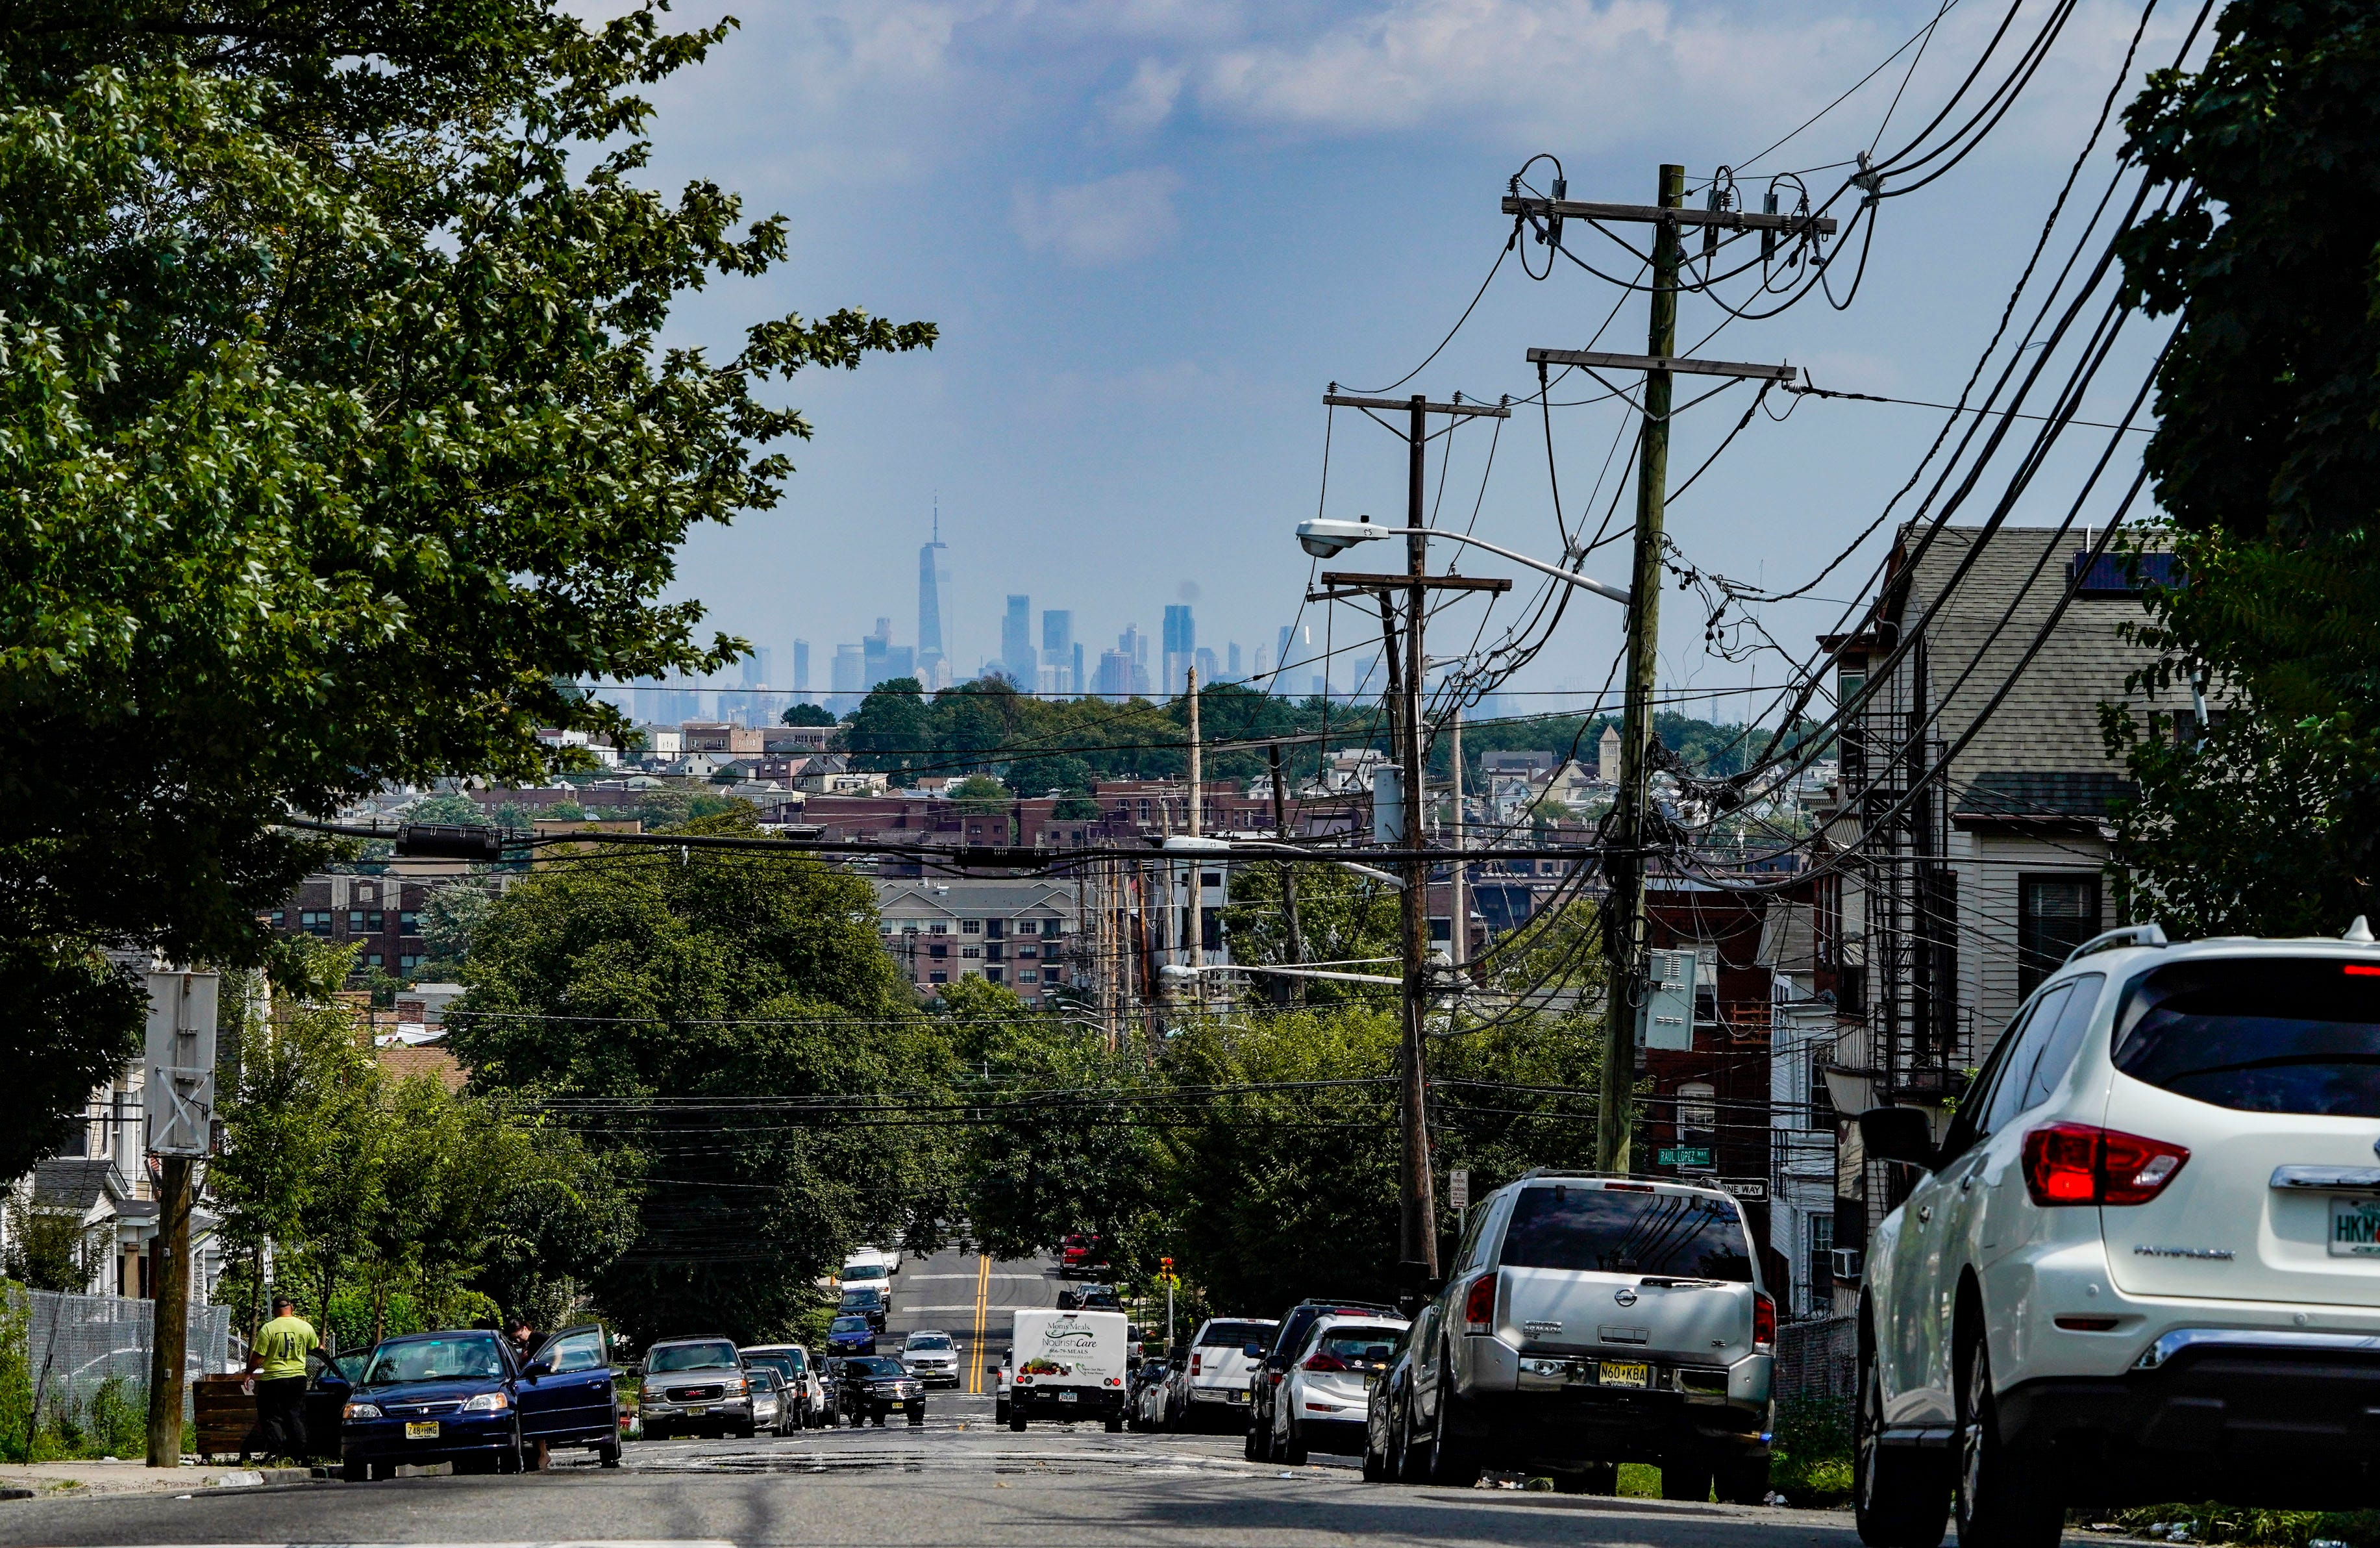 The New York City skyline seen from a neighborhood in East Orange, N.J. In Essex County, the communities with the highest cases of COVID-19 are populated by more Black and brown people than by white Americans.